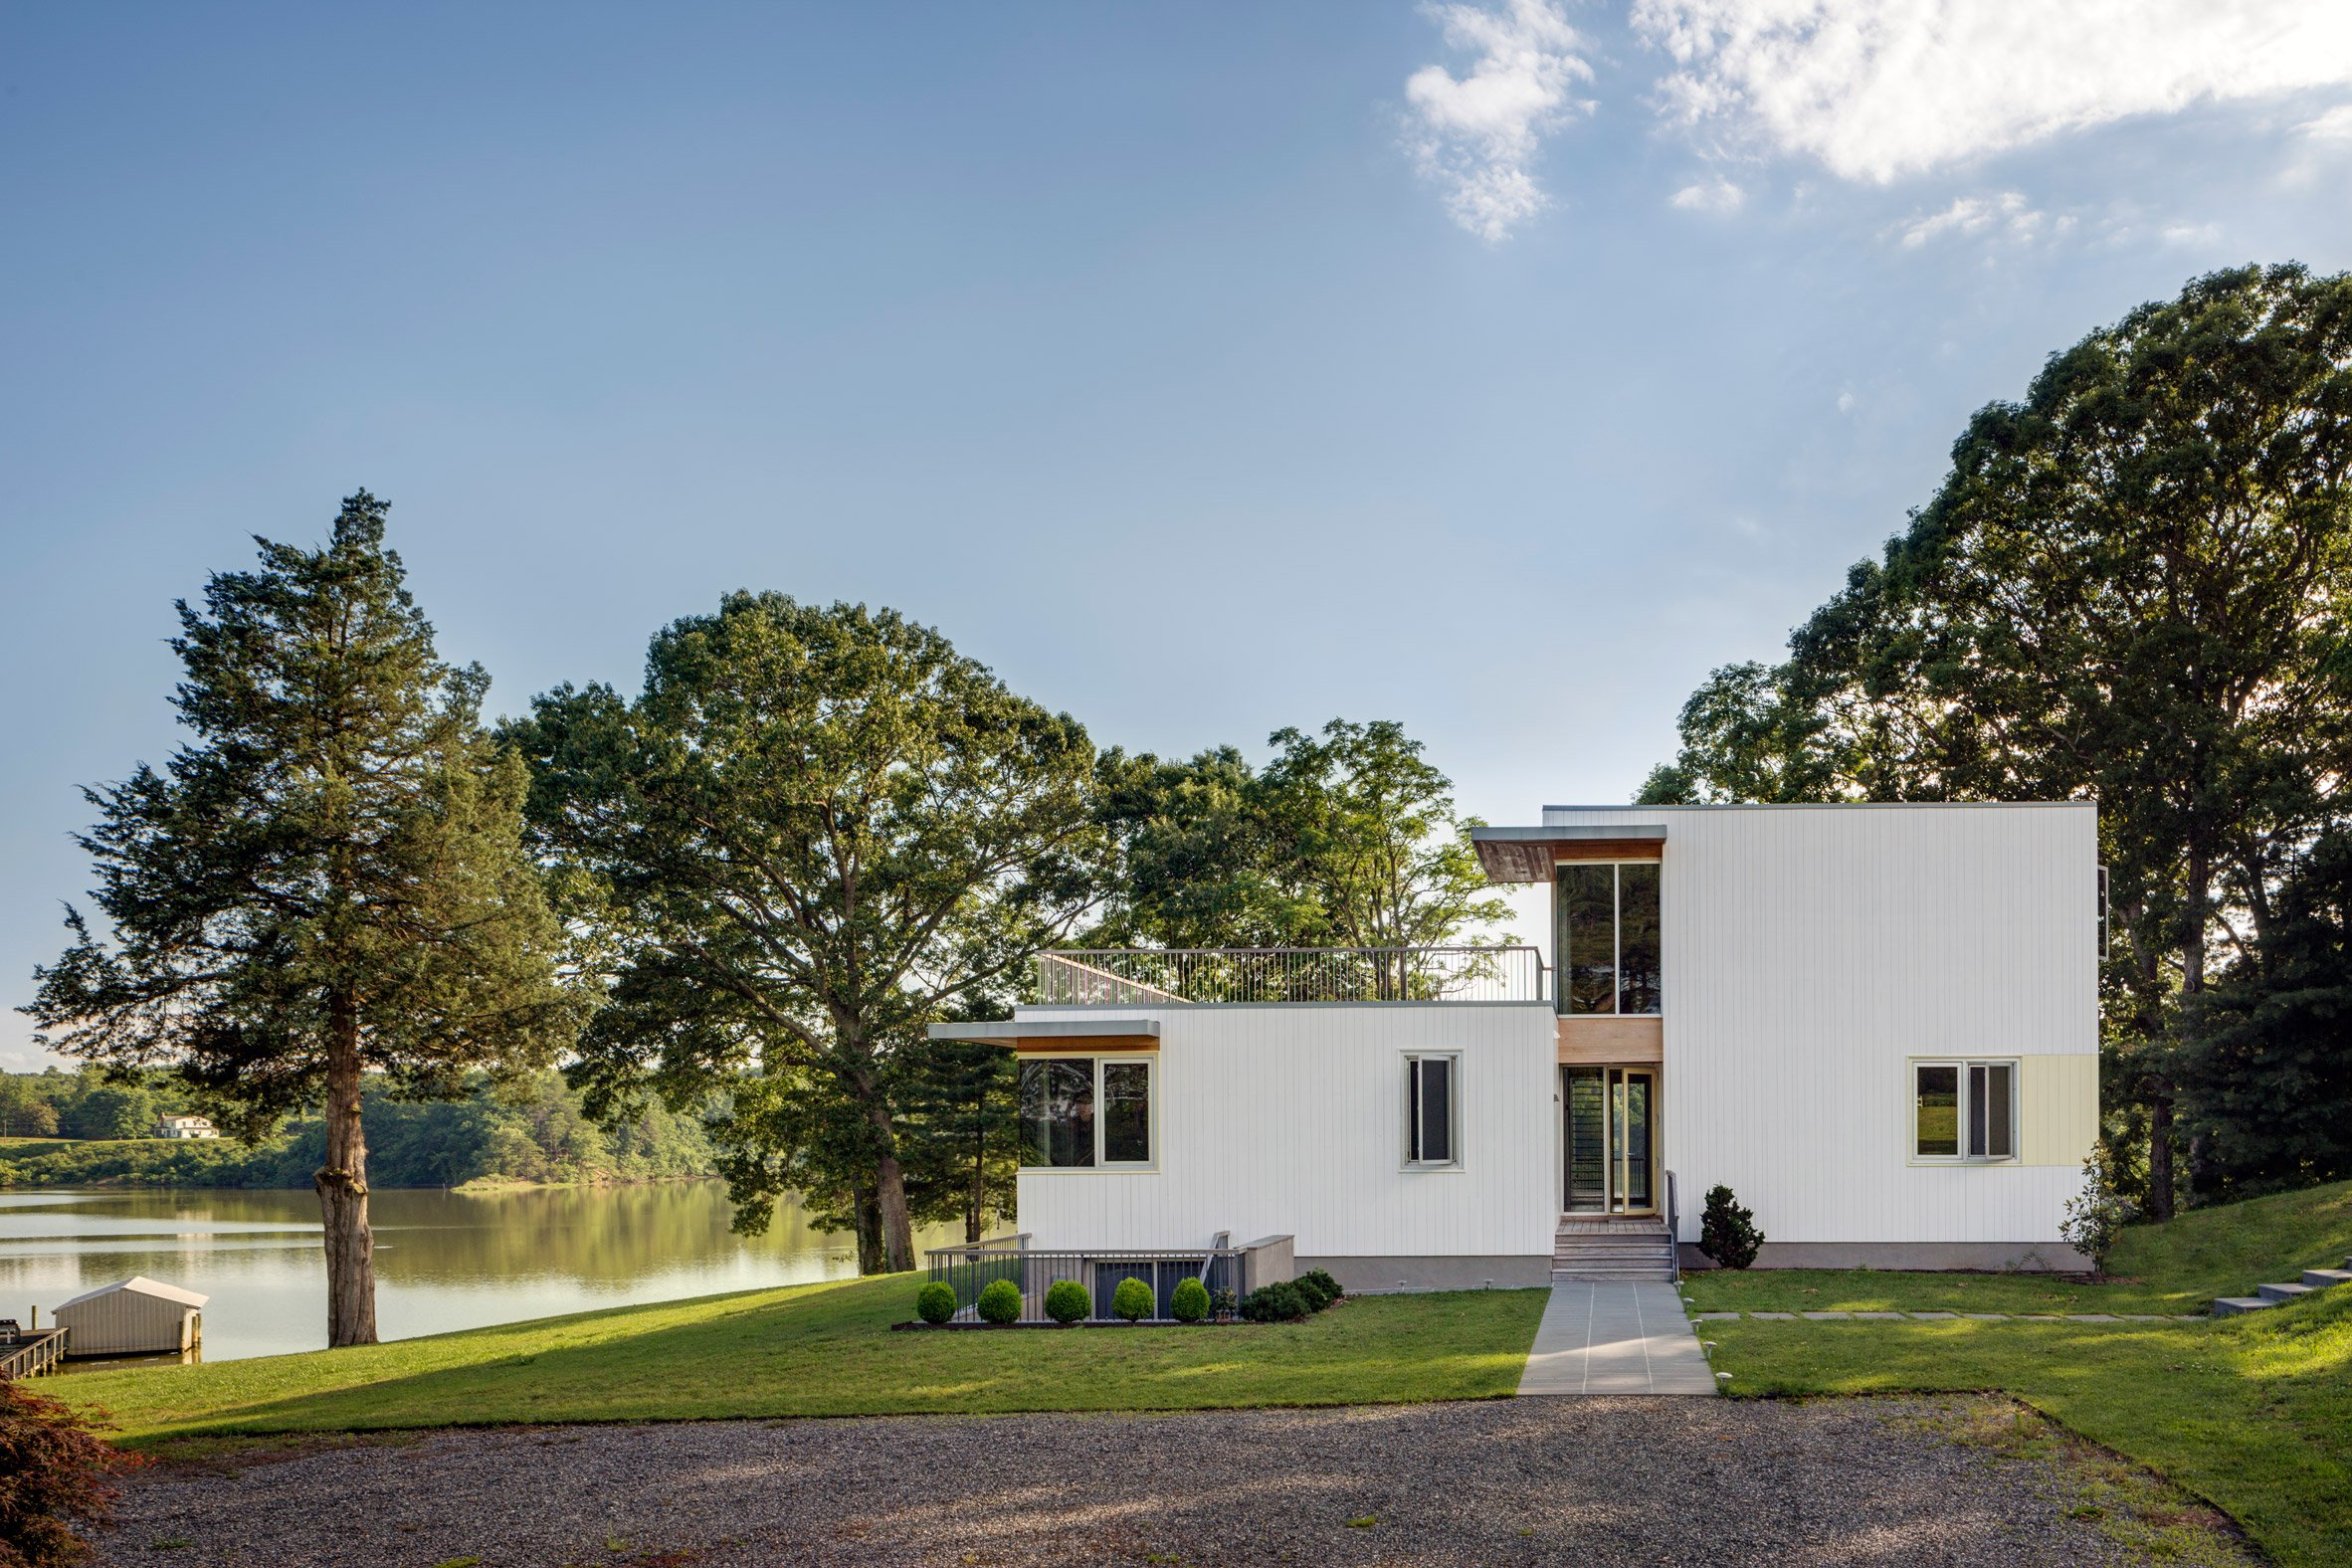 BFDO redesigns waterfront house with rooftop garden in Virginia